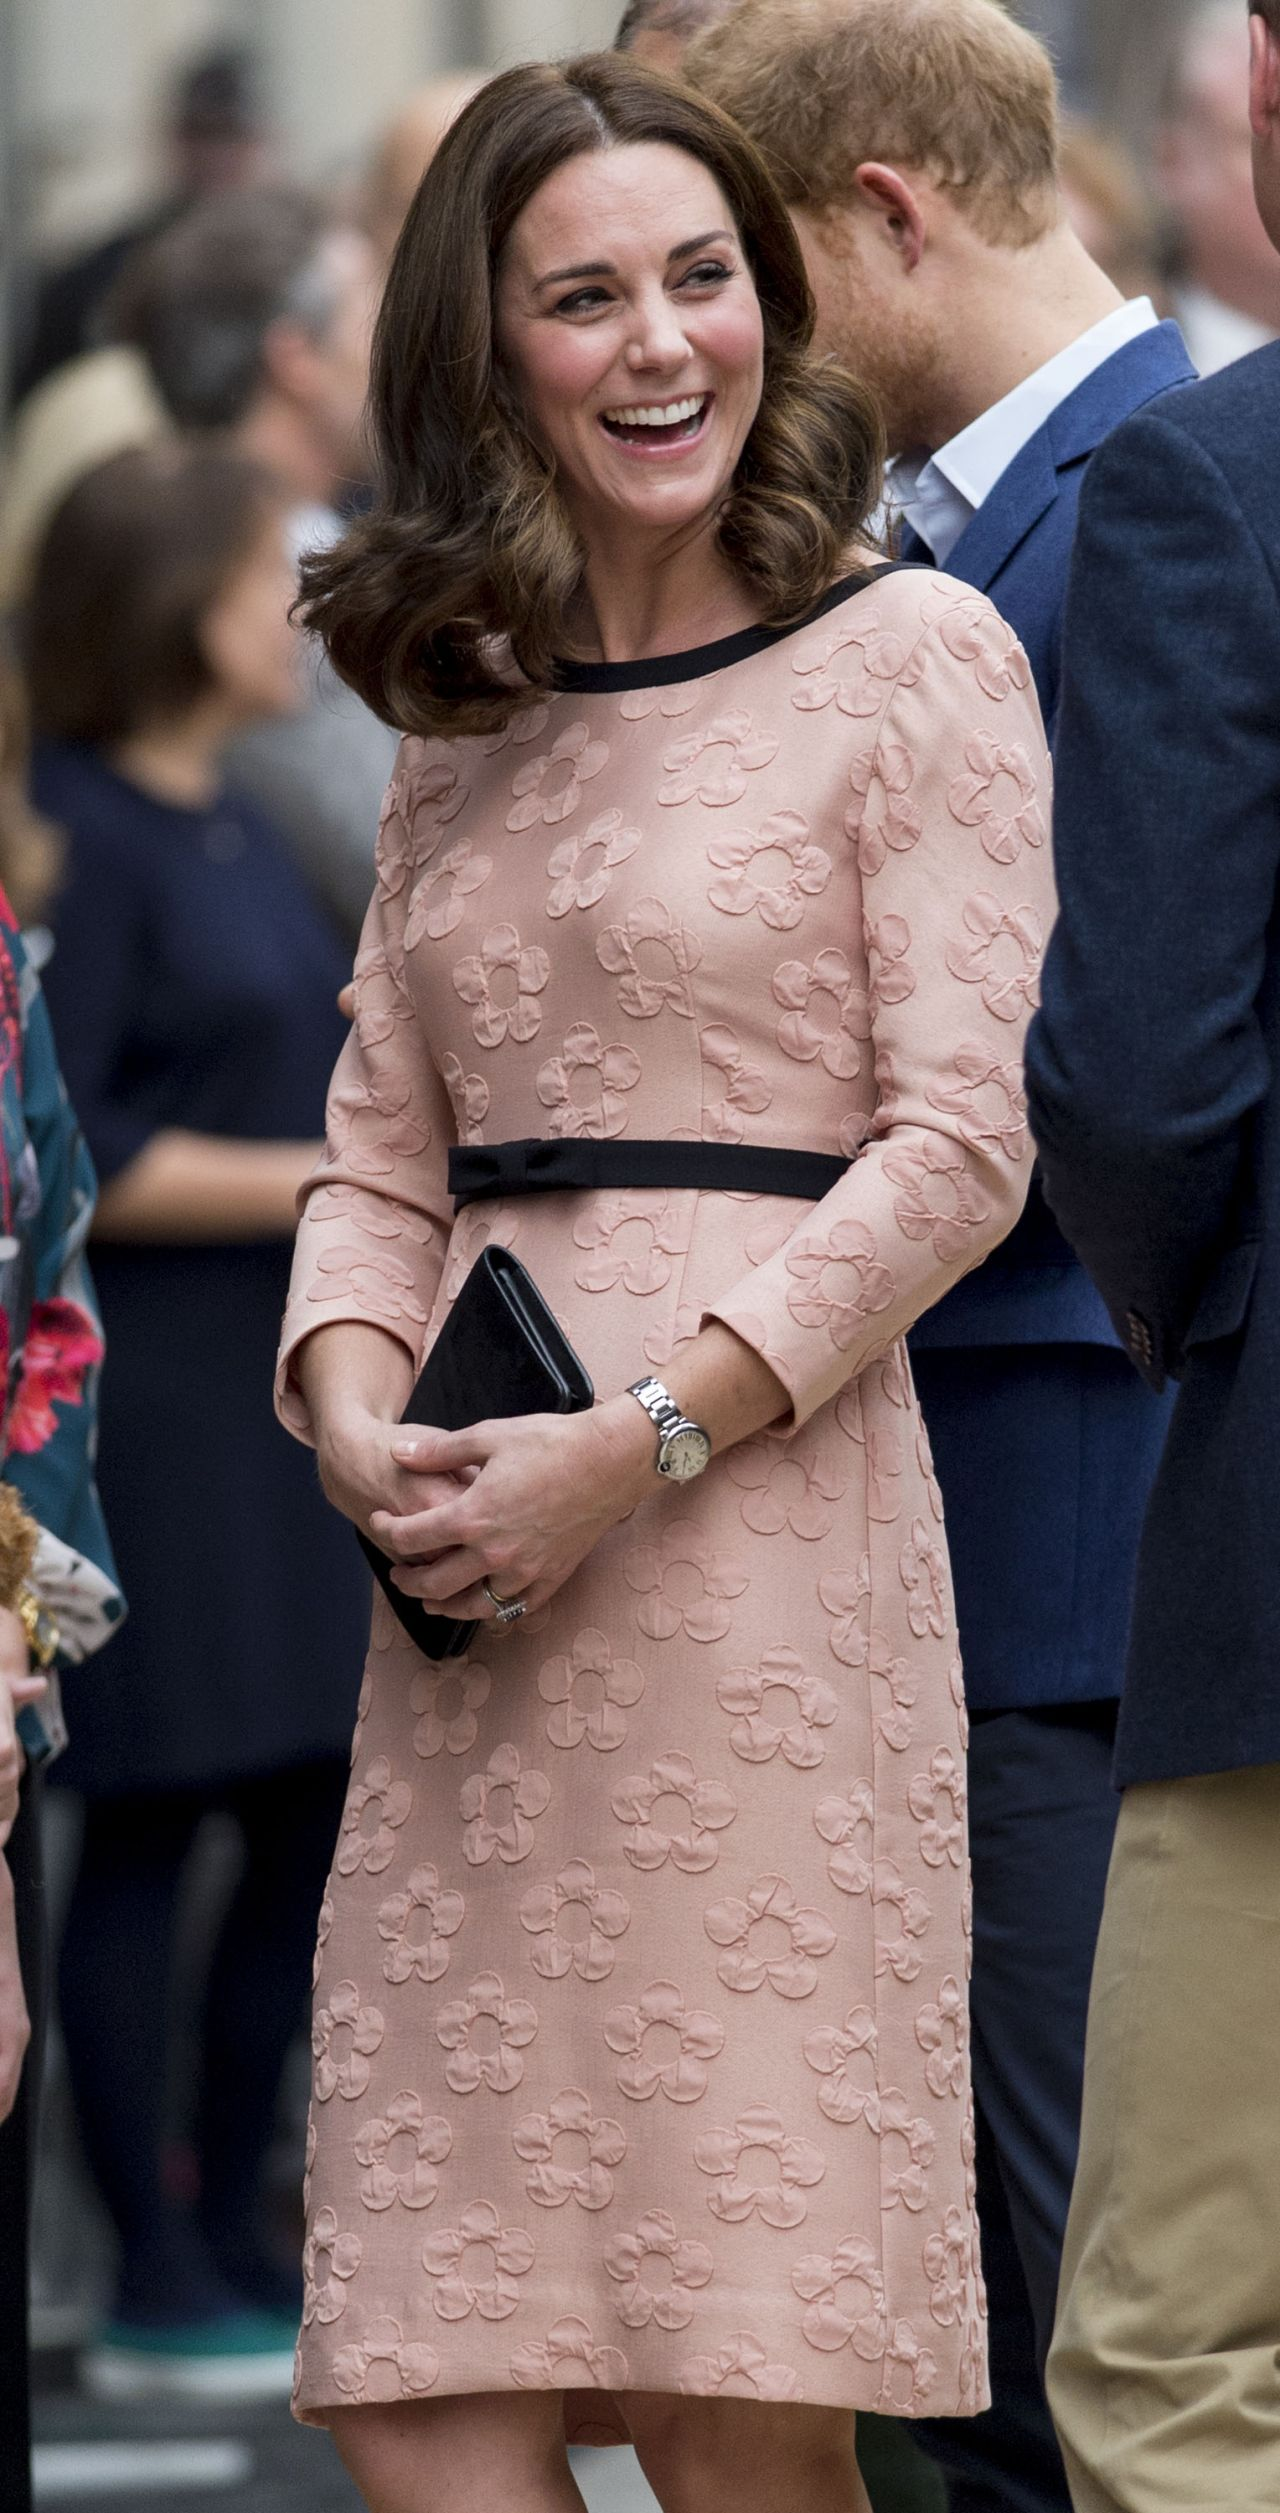 Kate Middleton Charities Forum Event In London 10 16 2017